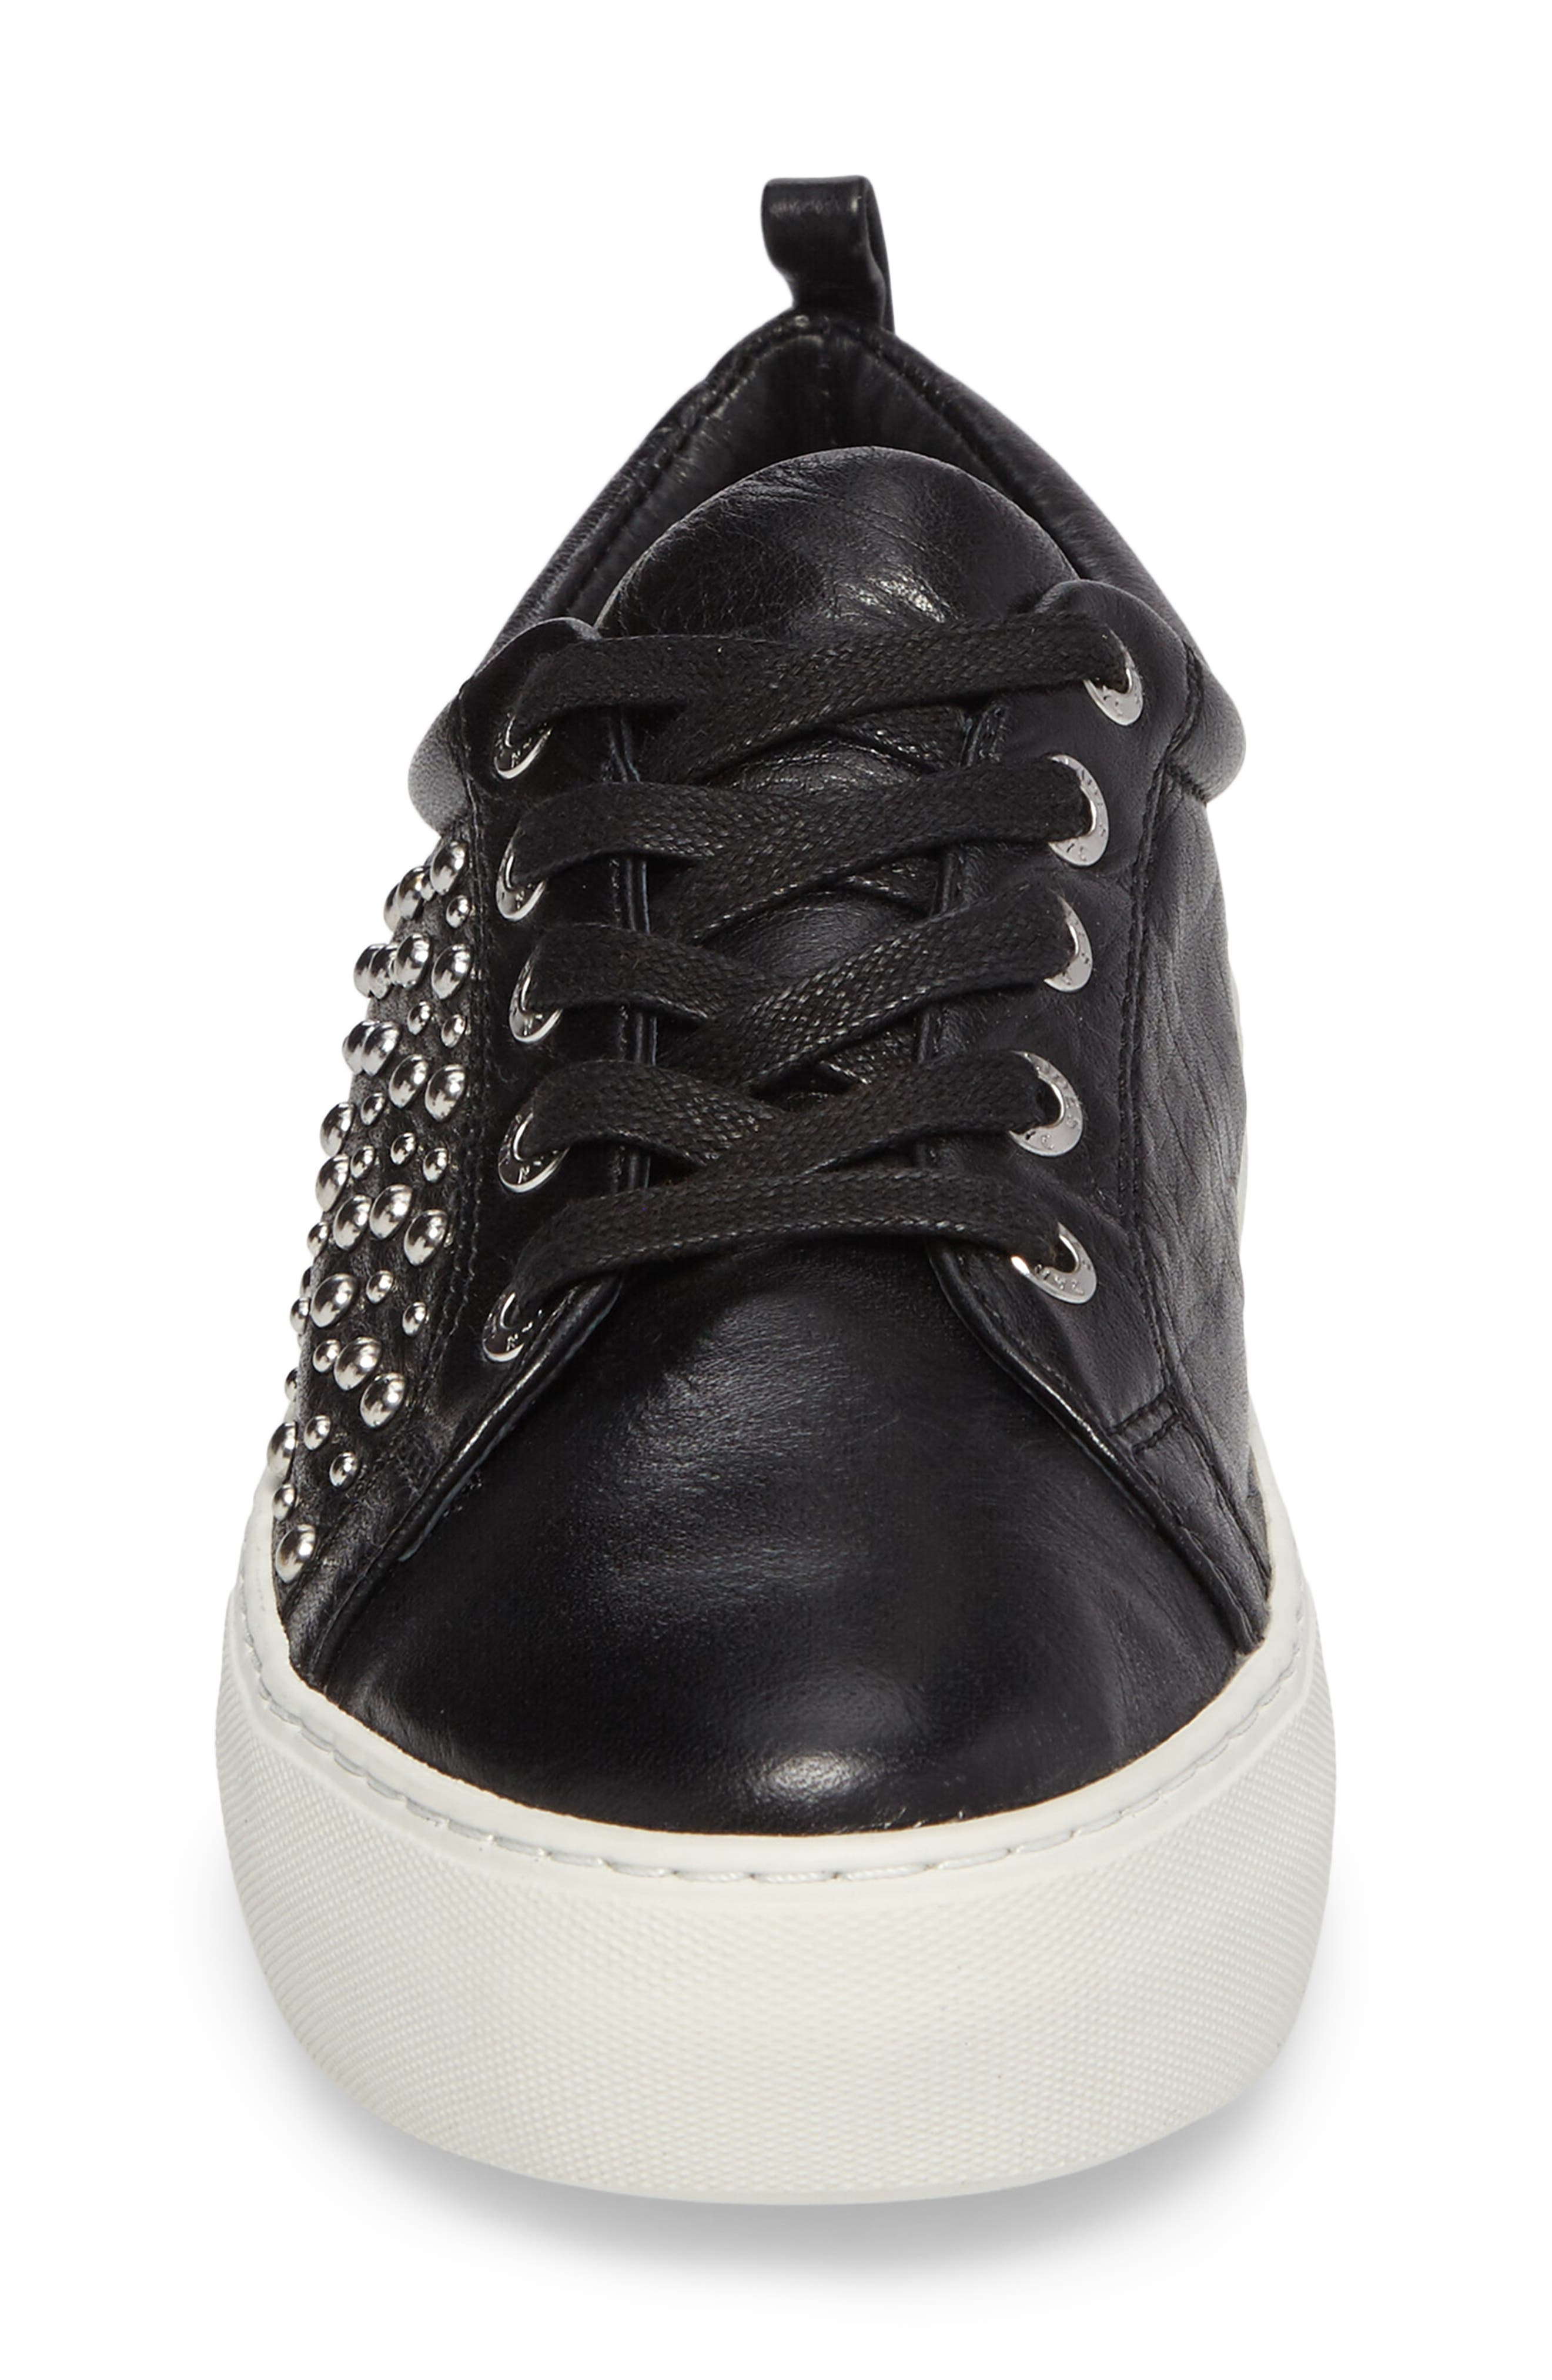 Ambrosia Studded Lace-Up Sneaker,                             Alternate thumbnail 4, color,                             Black Leather